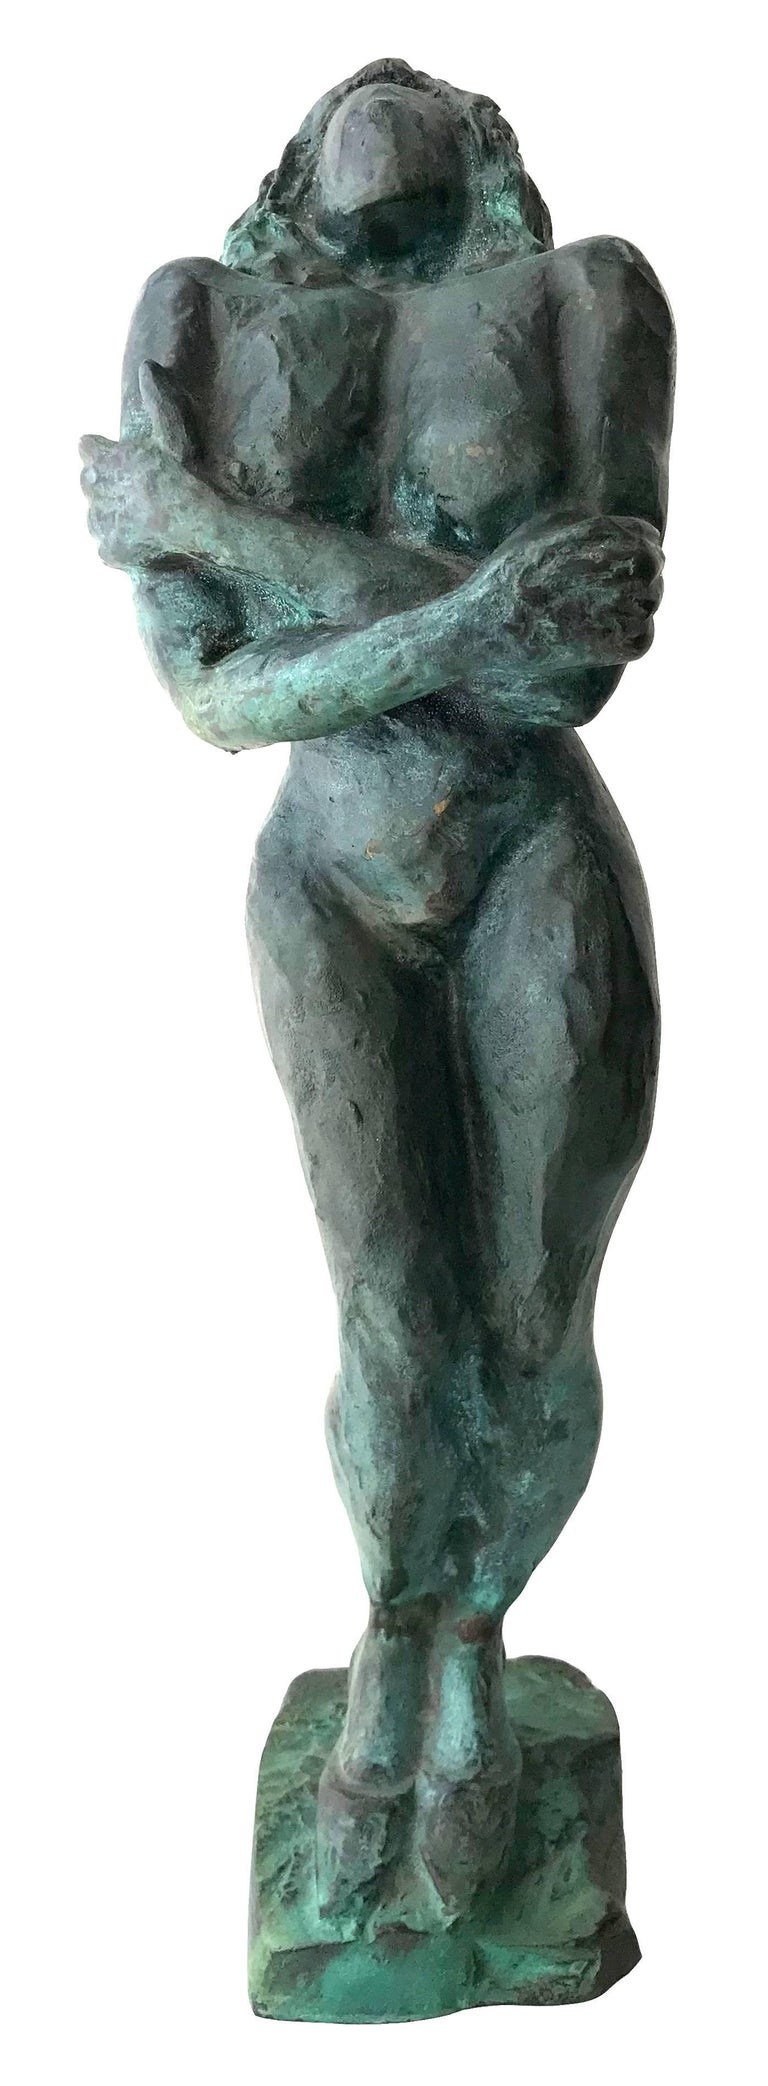 Nude Woman; Nicole Durand (French 1957); bronze with patina; - Sculpture by Nicole Durand